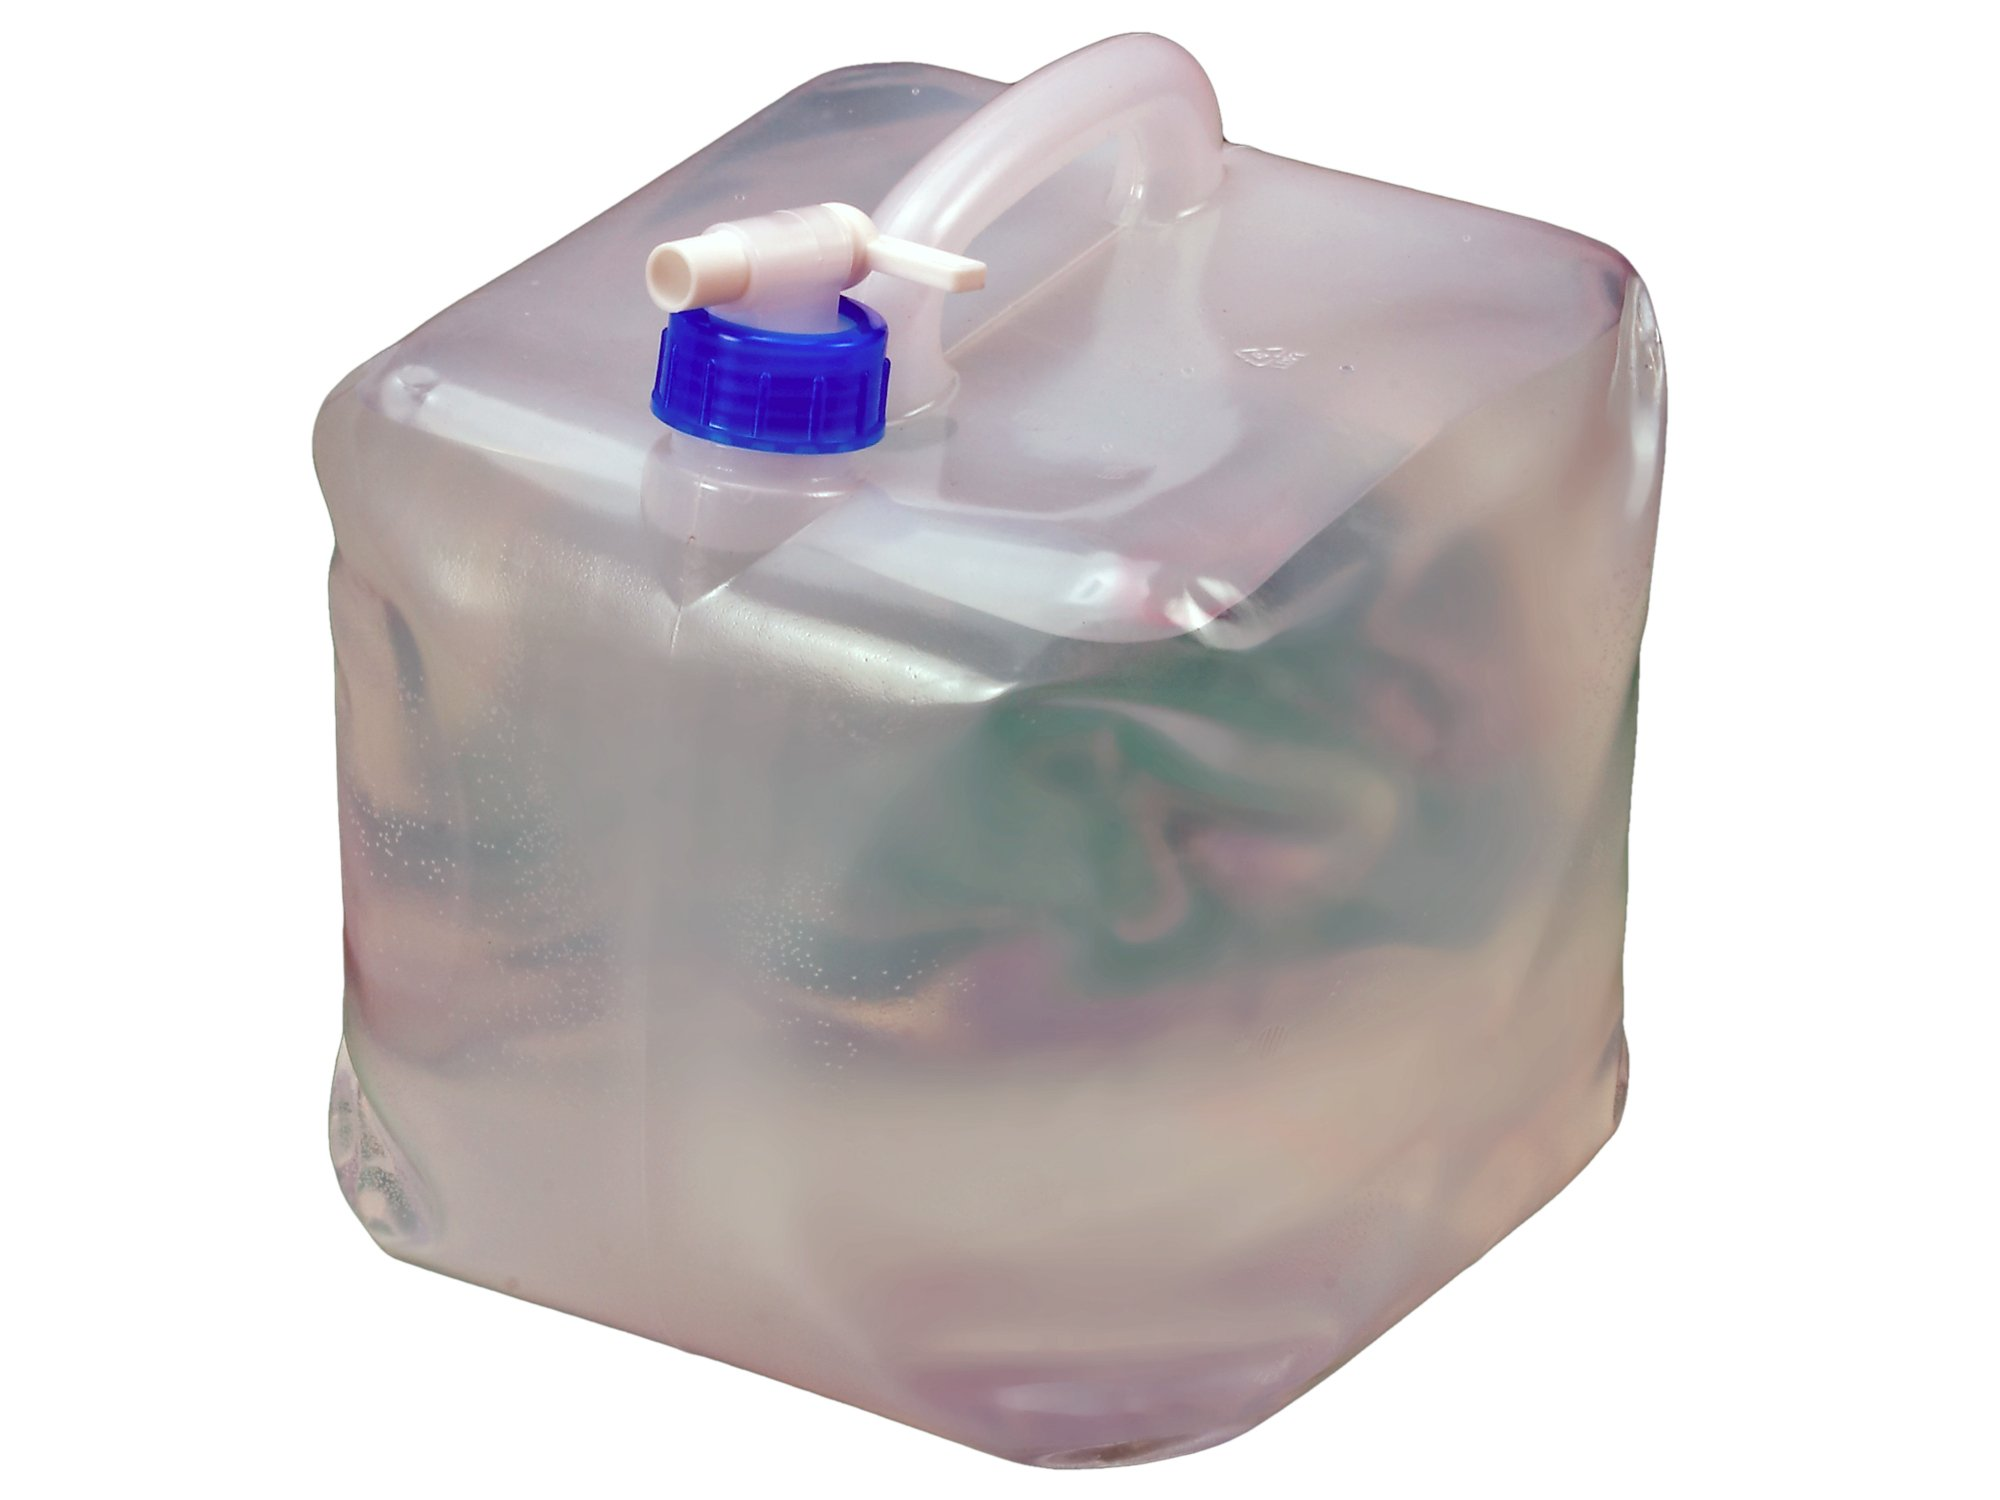 10 L (2.65 Gal) Collapsible Water Carrier Container JUG for Camping- Five Oceans by Five Oceans